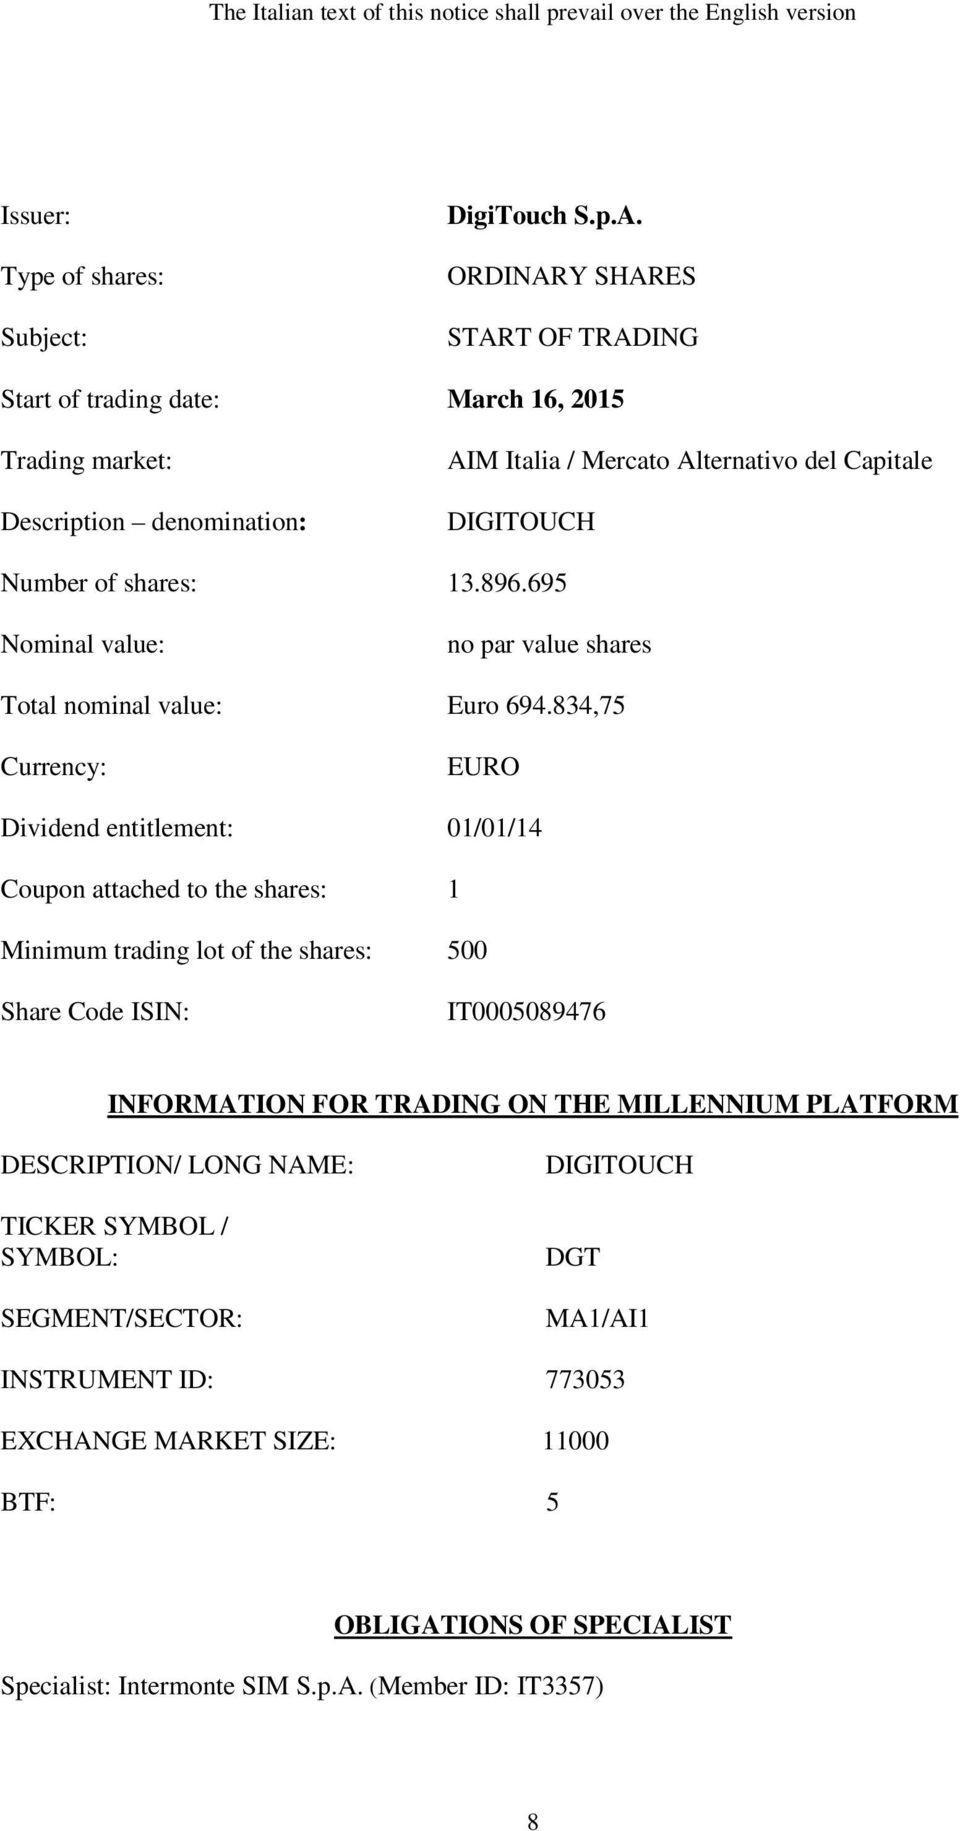 834,75 Currency: EURO Dividend entitlement: 01/01/14 Coupon attached to the shares: 1 Minimum trading lot of the shares: 500 Share Code ISIN: IT0005089476 INFORMATION FOR TRADING ON THE MILLENNIUM